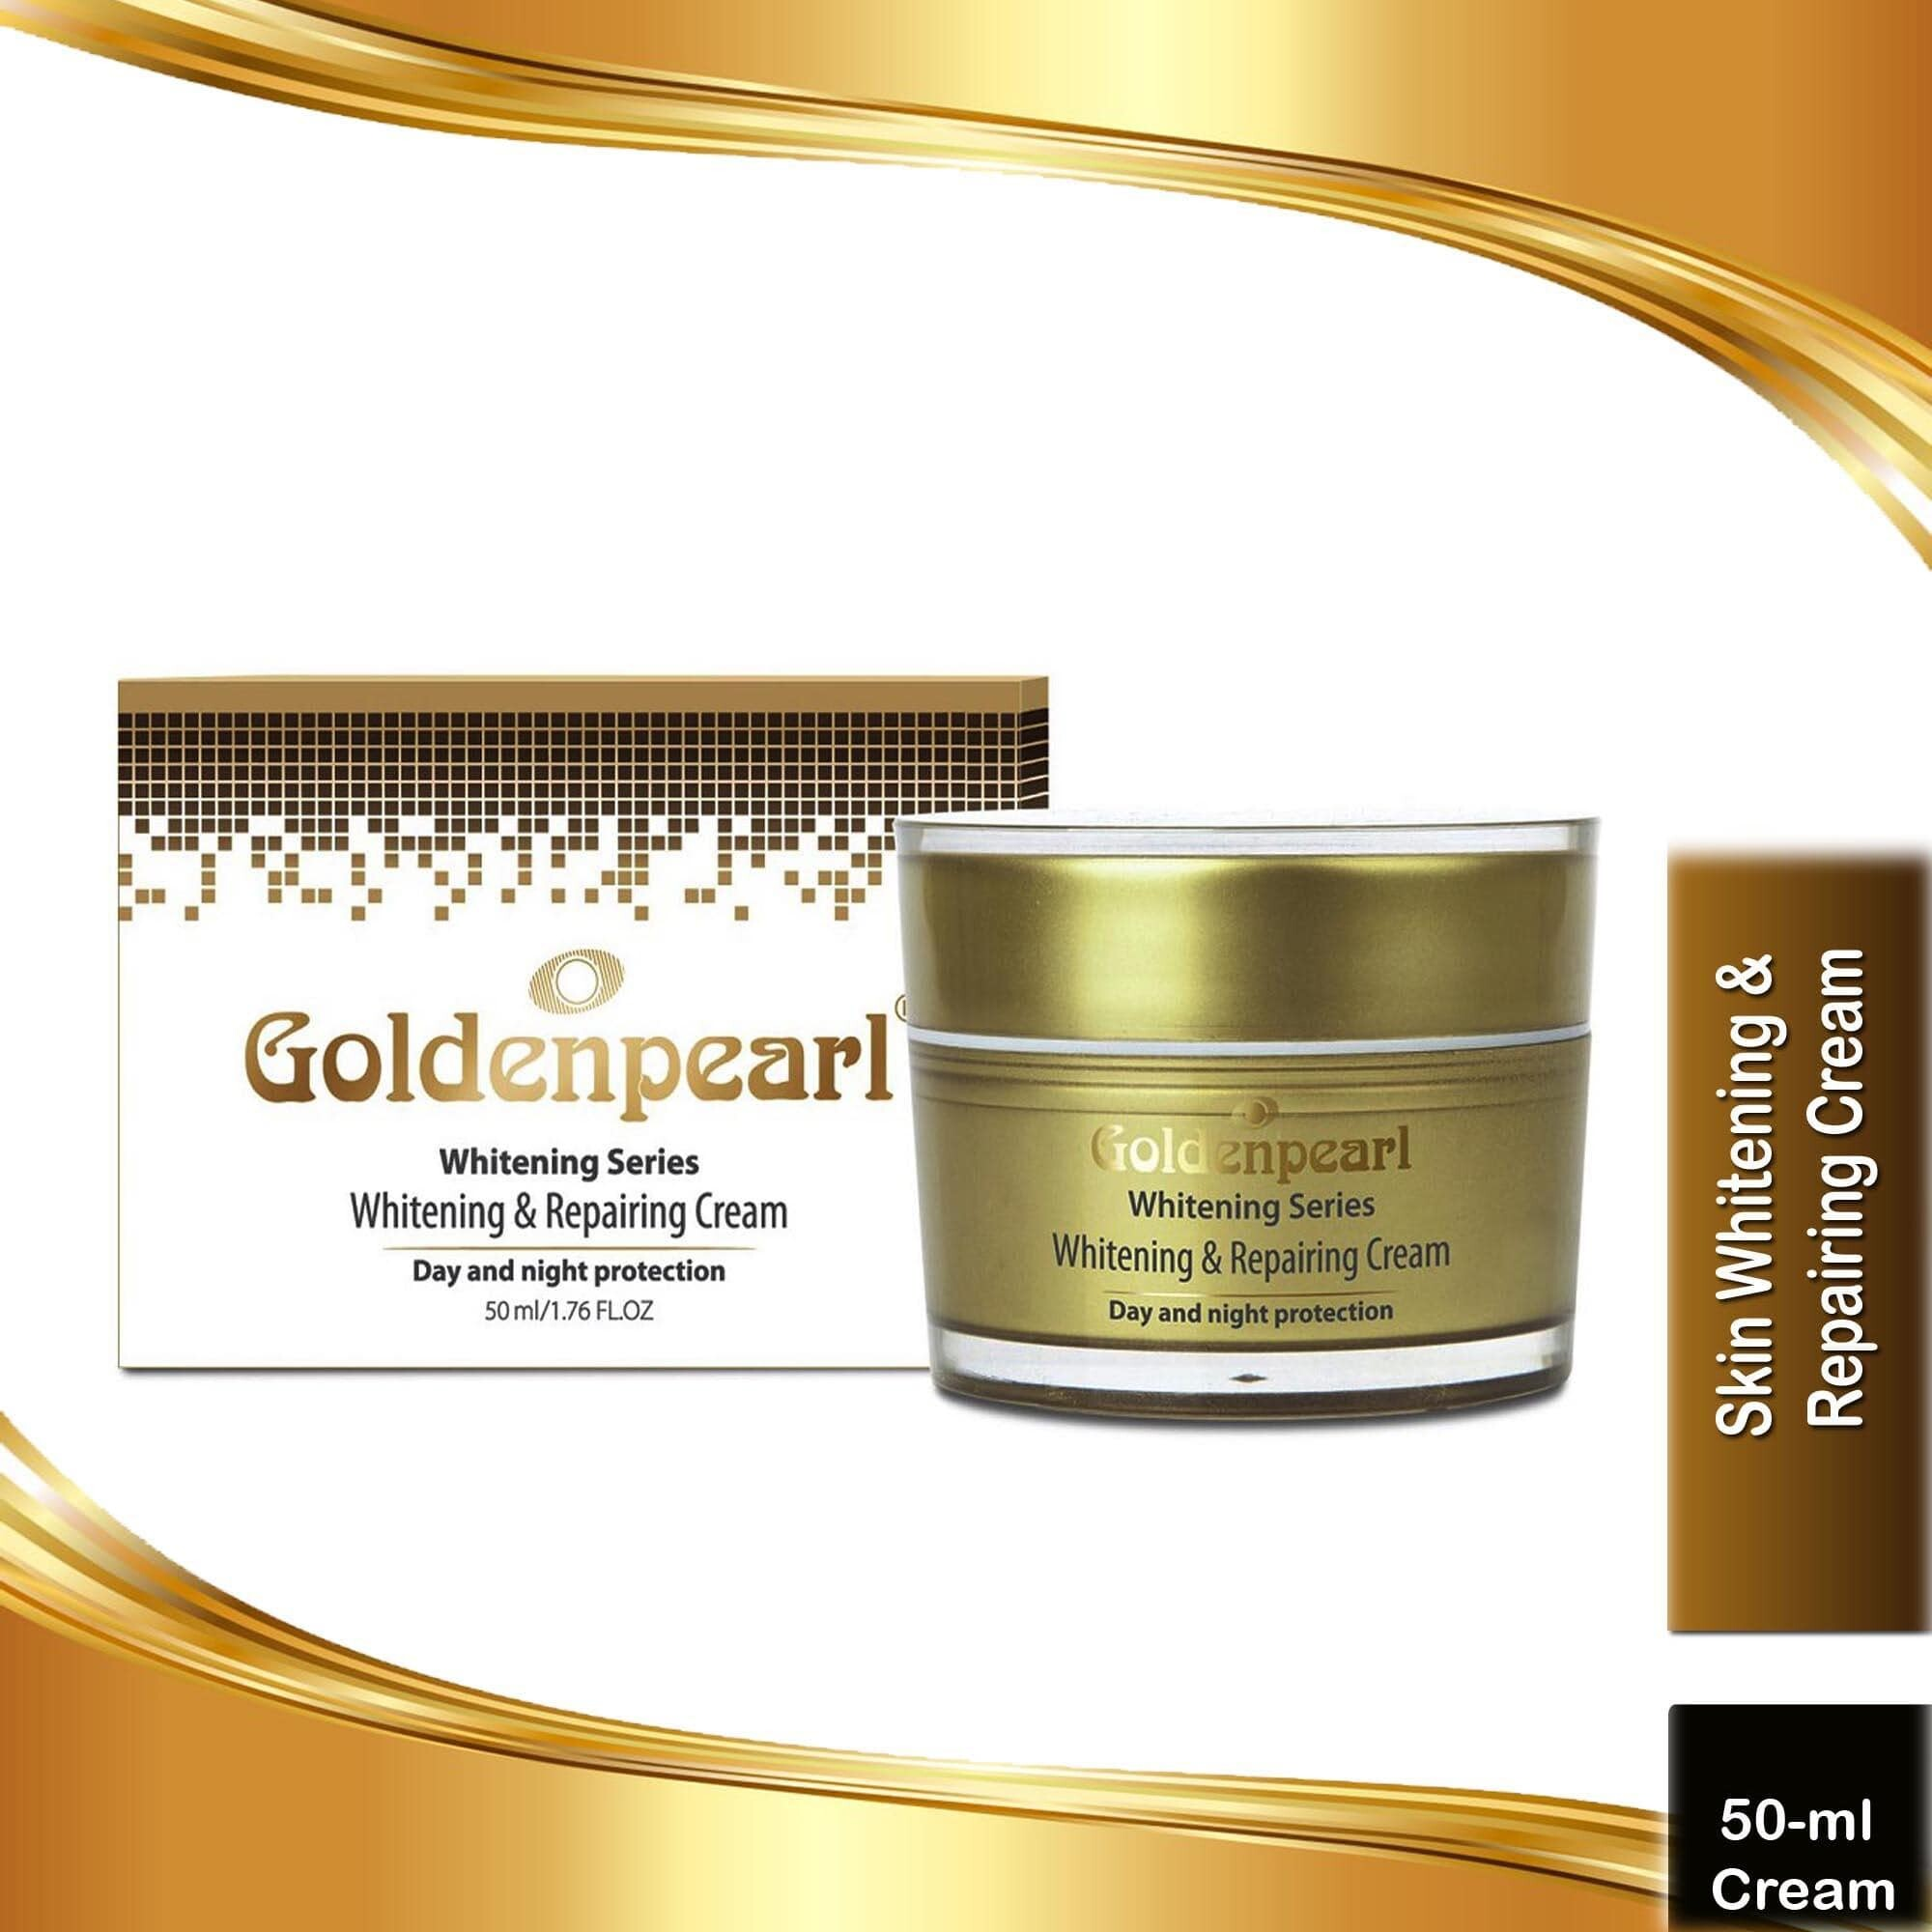 Golden Pearl Whitening Series Whitening & Repairing Cream Day & Night Protection (Premium Quality) Special Price